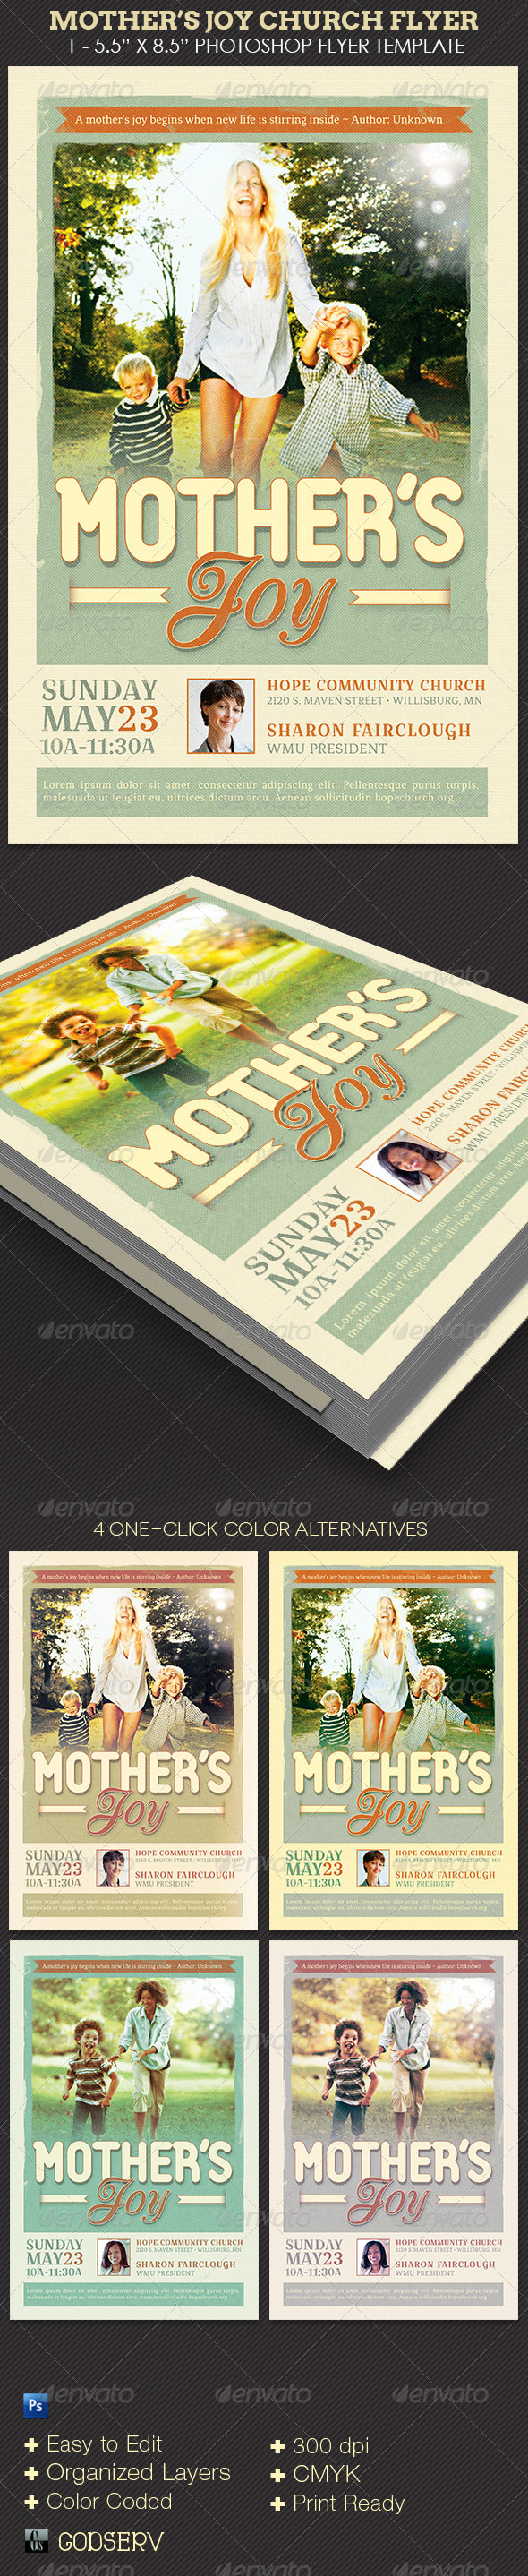 GraphicRiver Mother's Joy Church Flyer Template 7531312